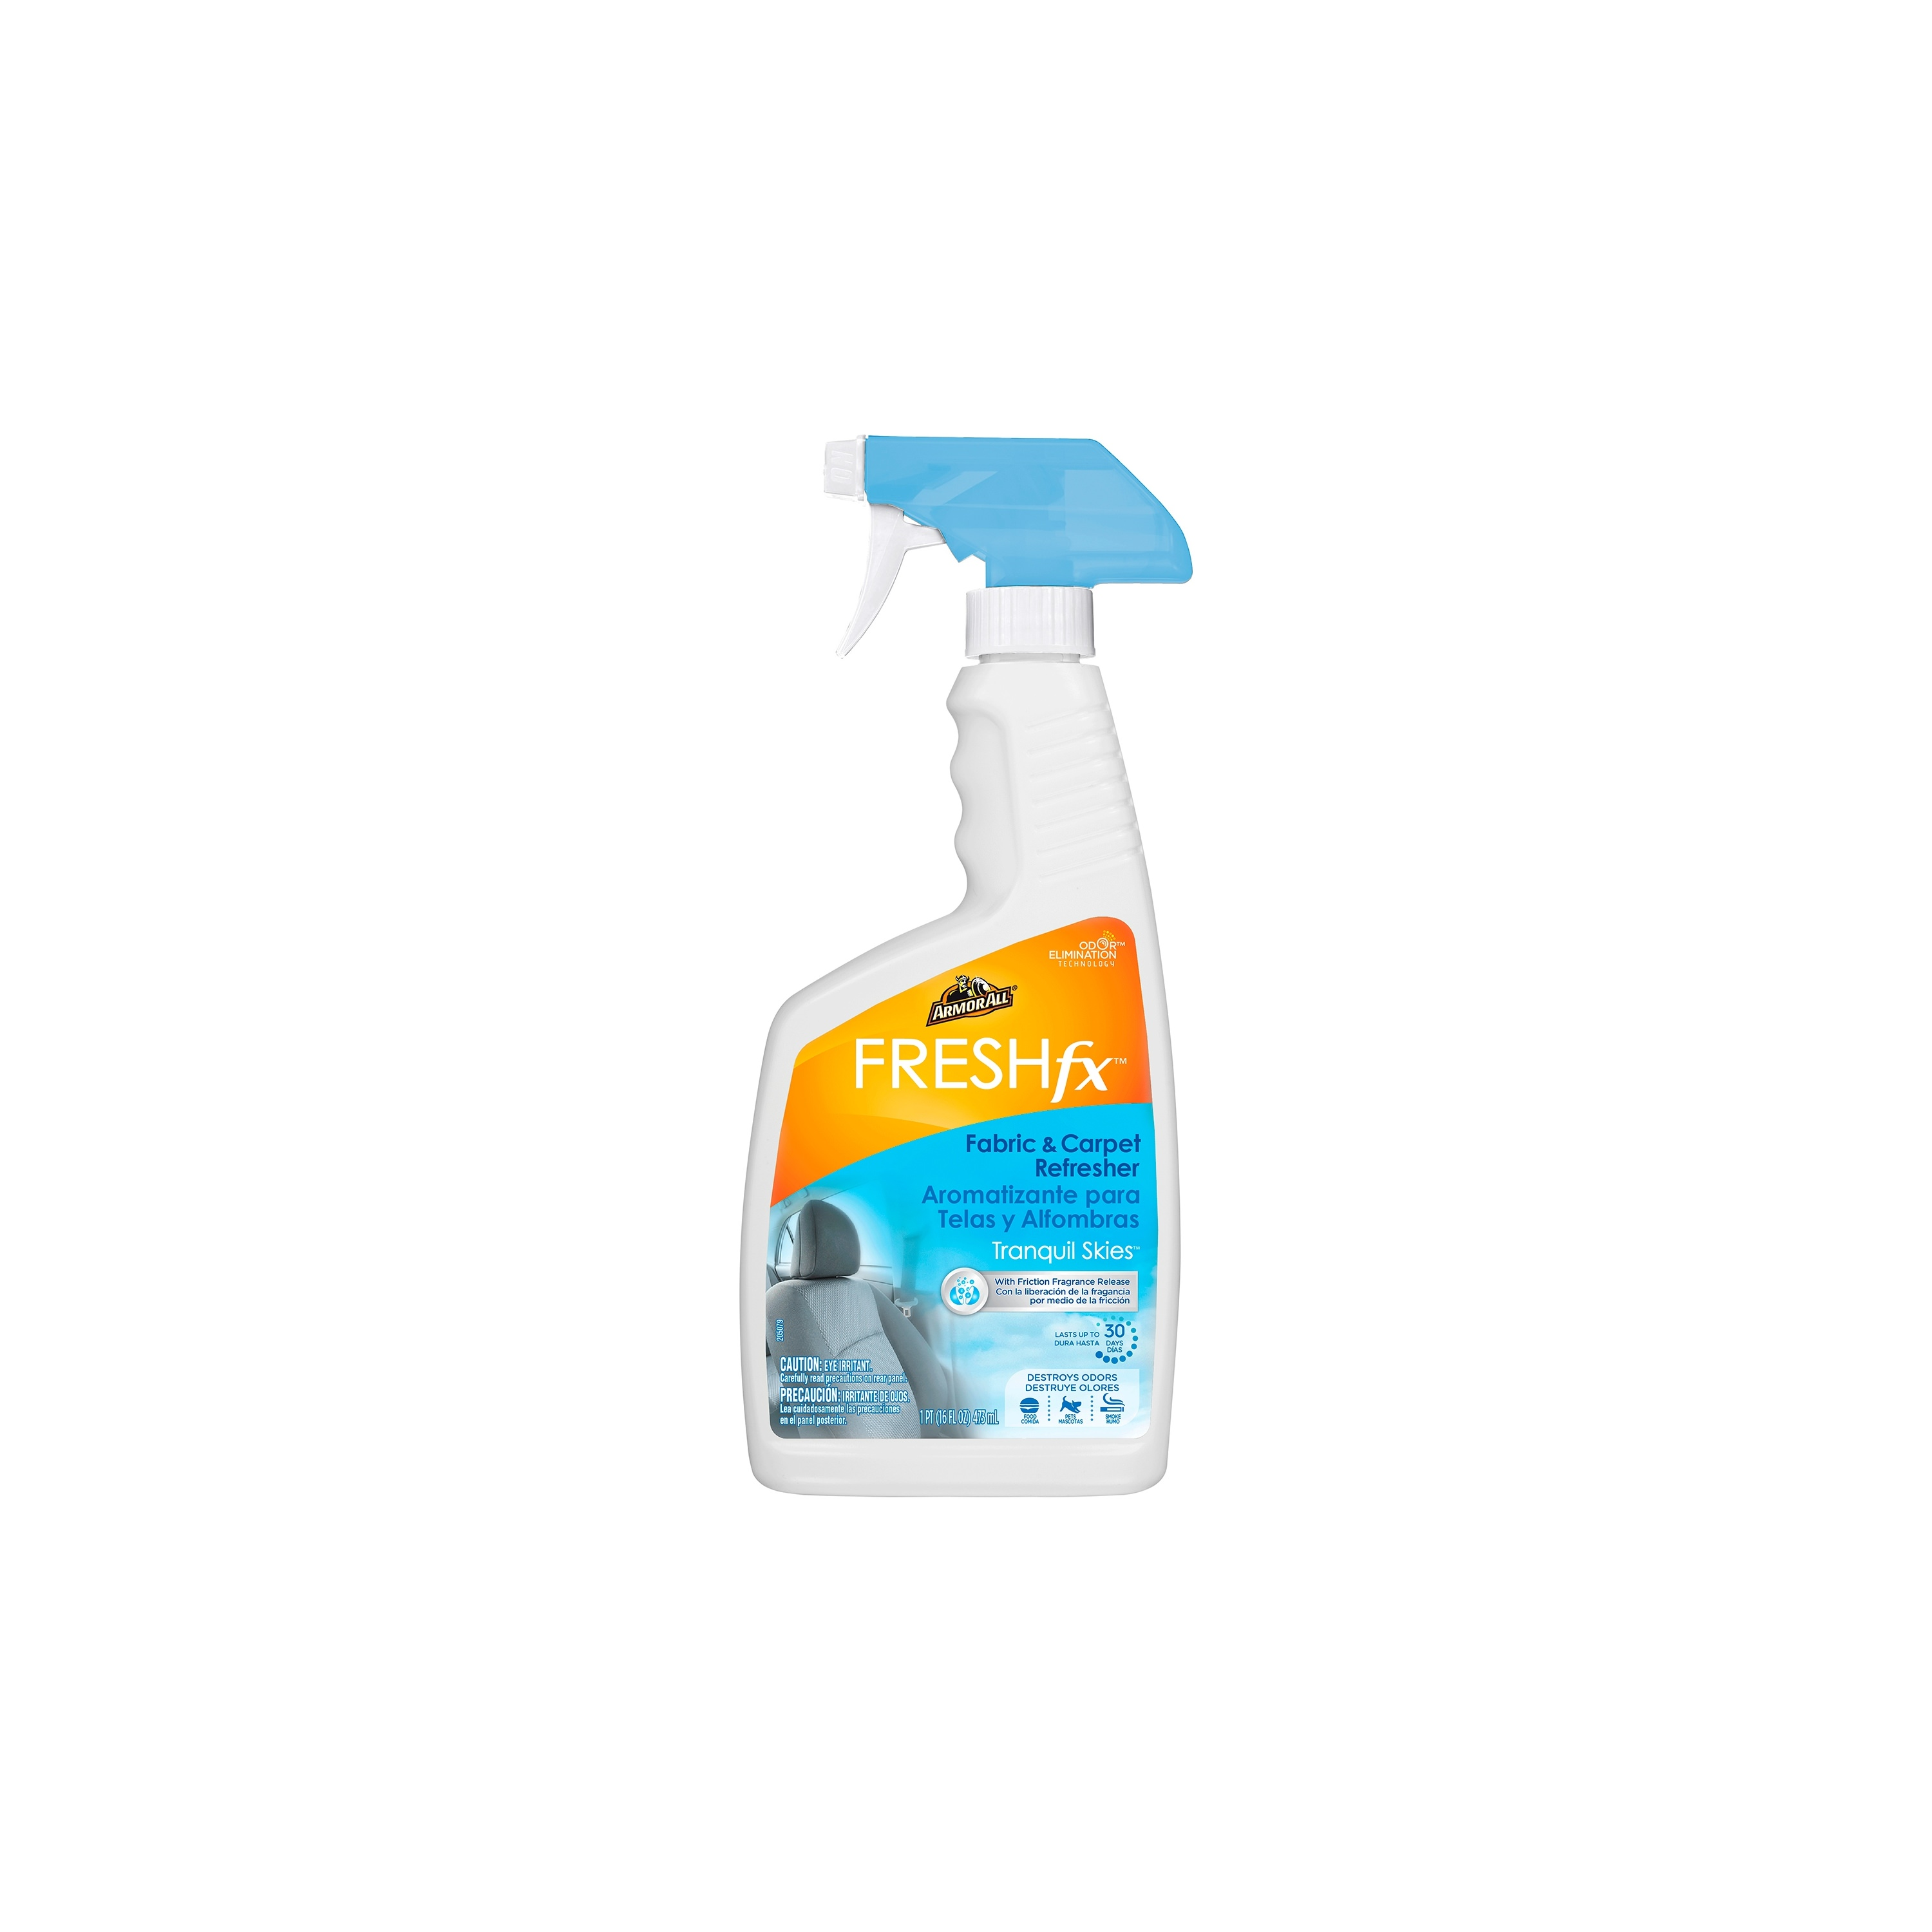 Armor All® Fres Hfx™ Fabric & Carpet Refresher Trigger – Tranquil Skies™ (16 Fluid Ounces) by Armor All